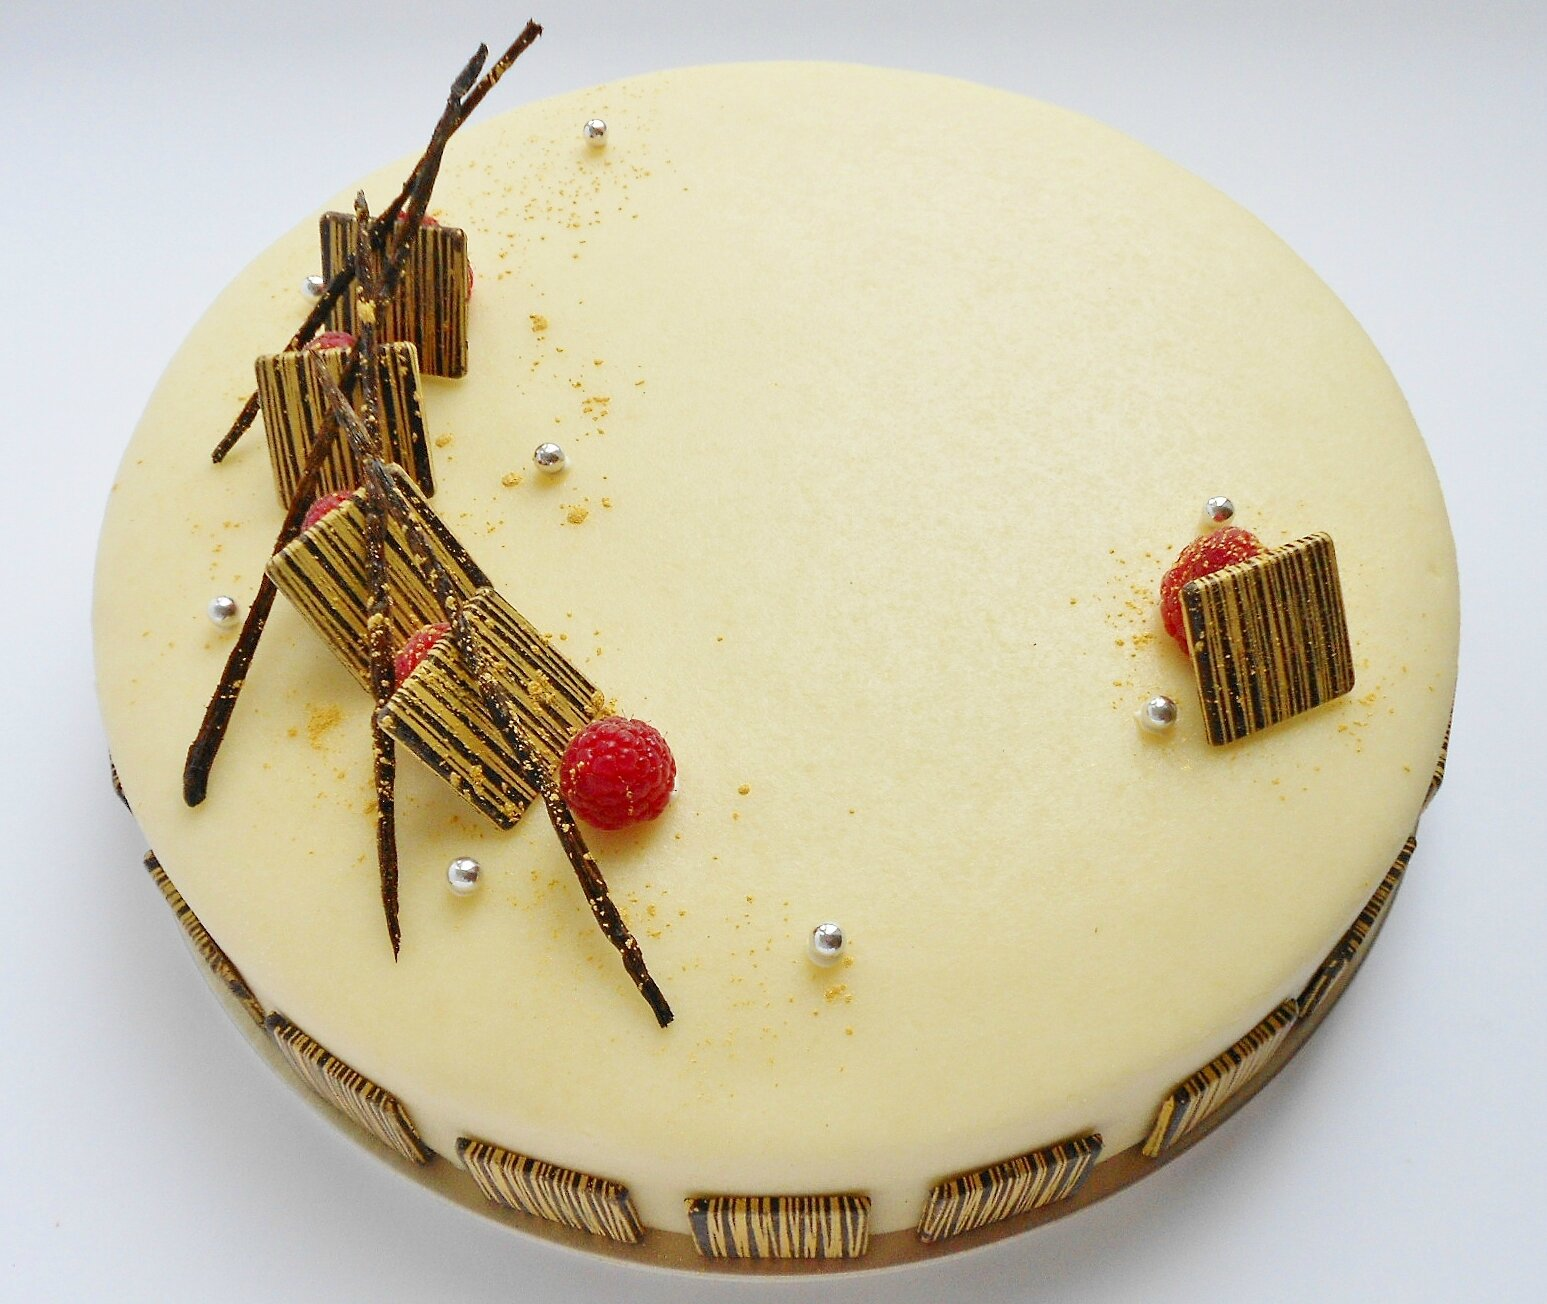 decoration gateau 2015